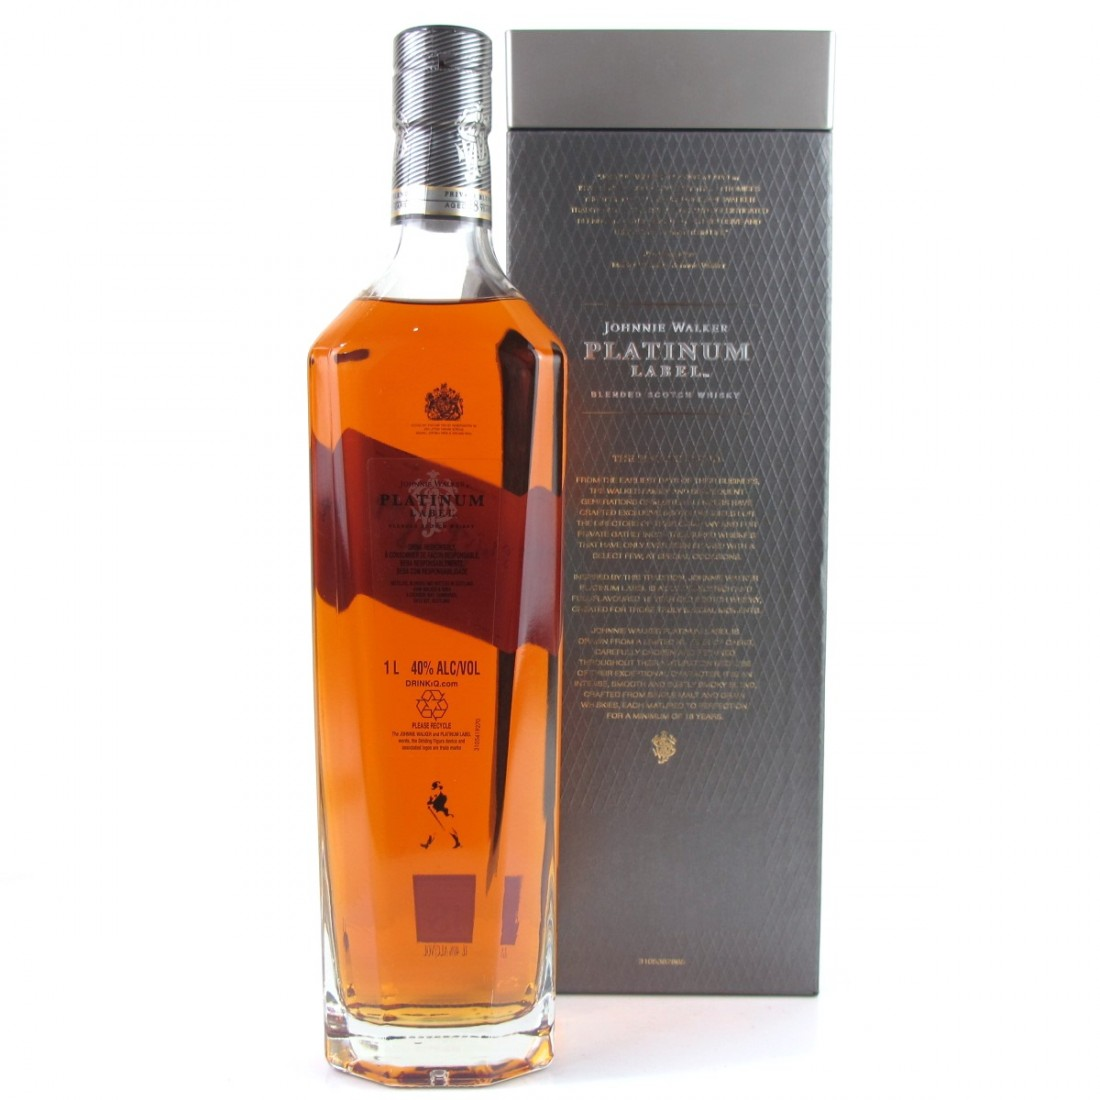 Johnnie Walker Platinum Label 18 Year Old 1 Litre Whisky